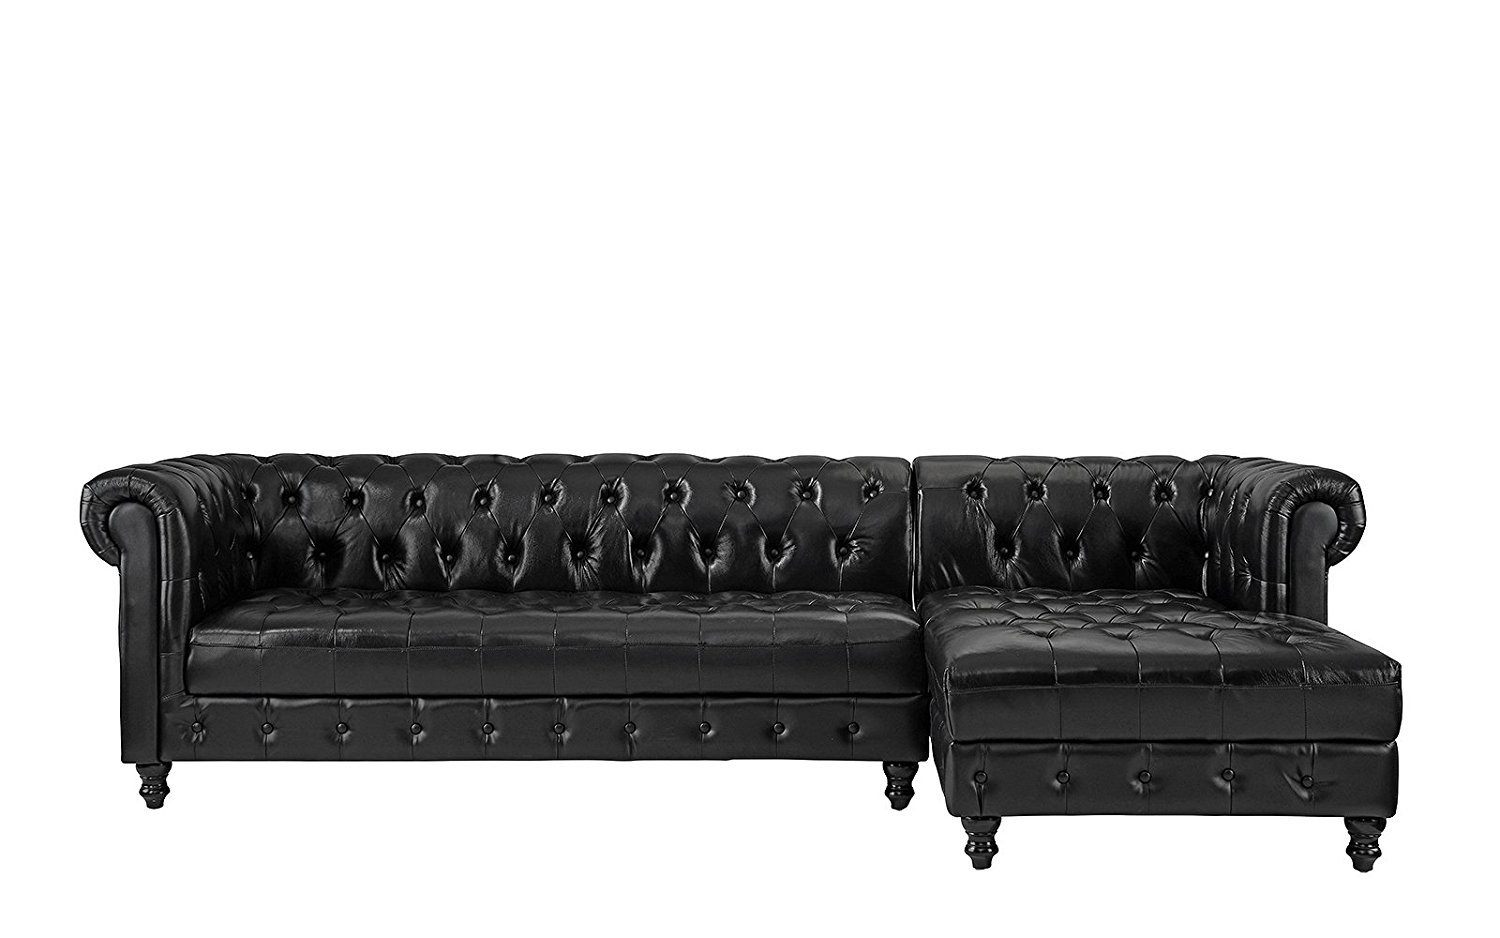 Chesterfield Sectional Sofa Details About Real Leather Chesterfield L Shape Tufted Sectional Sofa Right Chaise Black